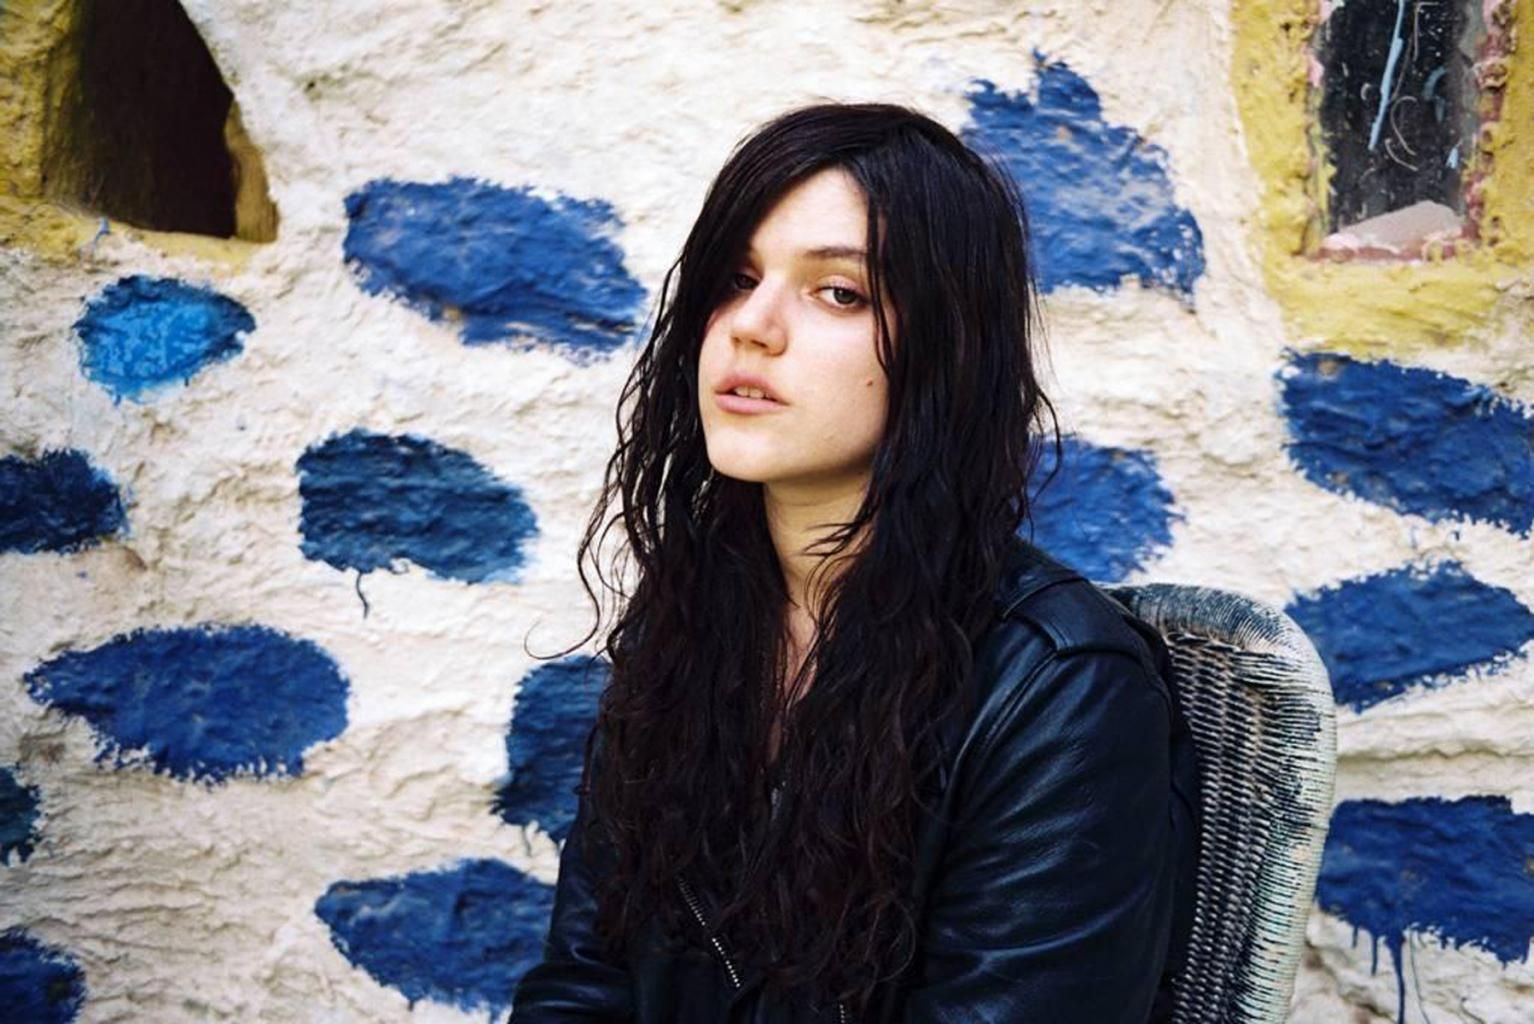 The Voice: French Singer Soko On Her Music, Mood Swings